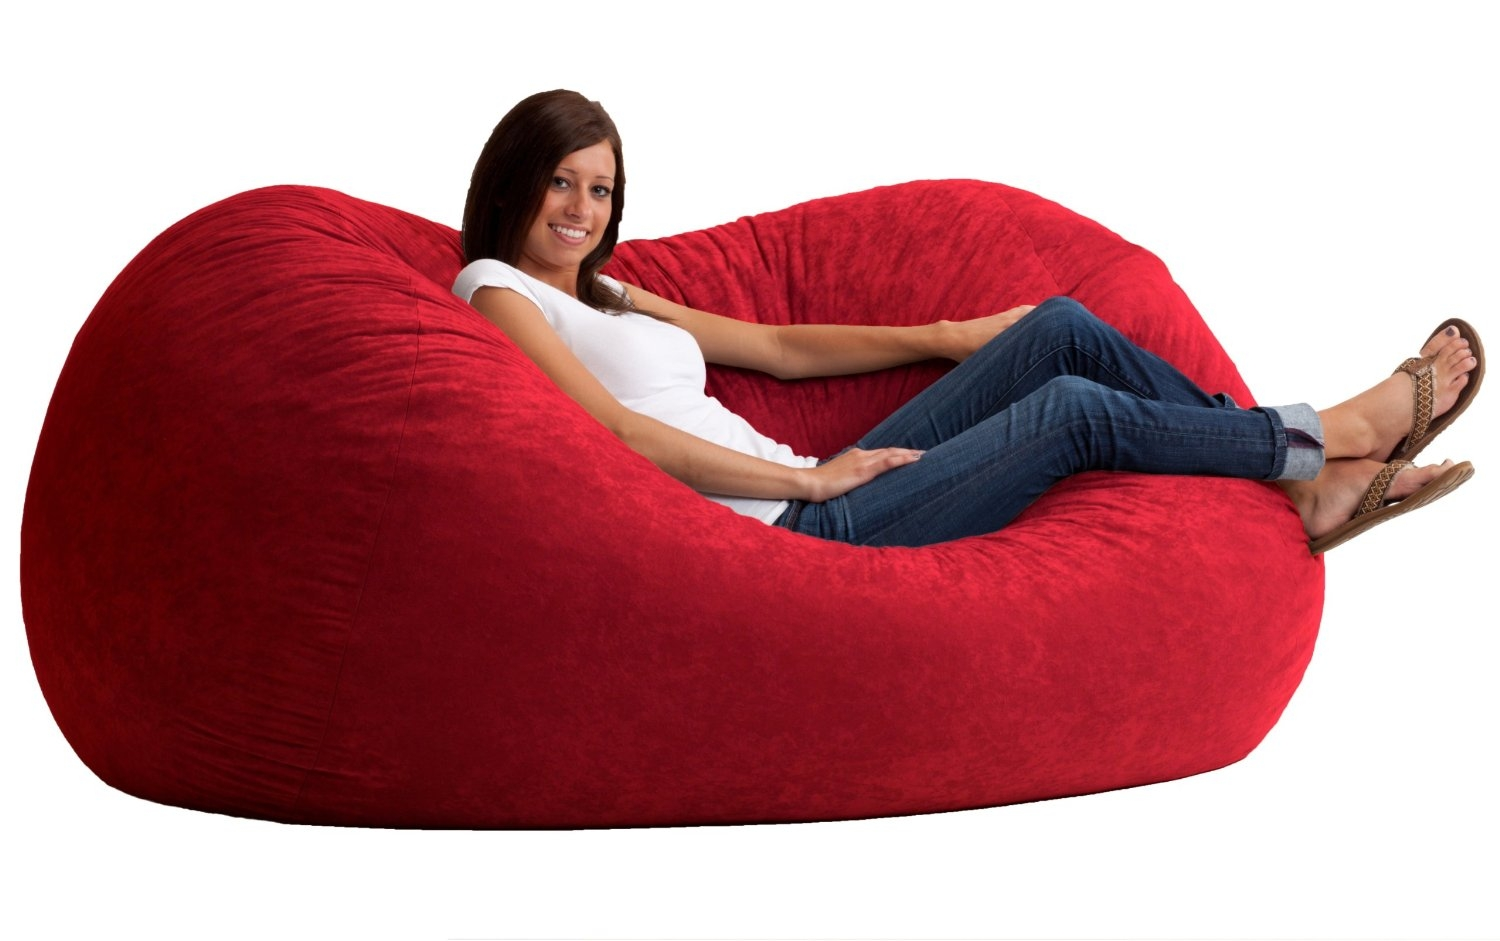 Furniture Bean Bag Sofas Are There Any Benefits Bean Bag Sofa Inside Bean Bag Sofa Chairs (Image 11 of 15)